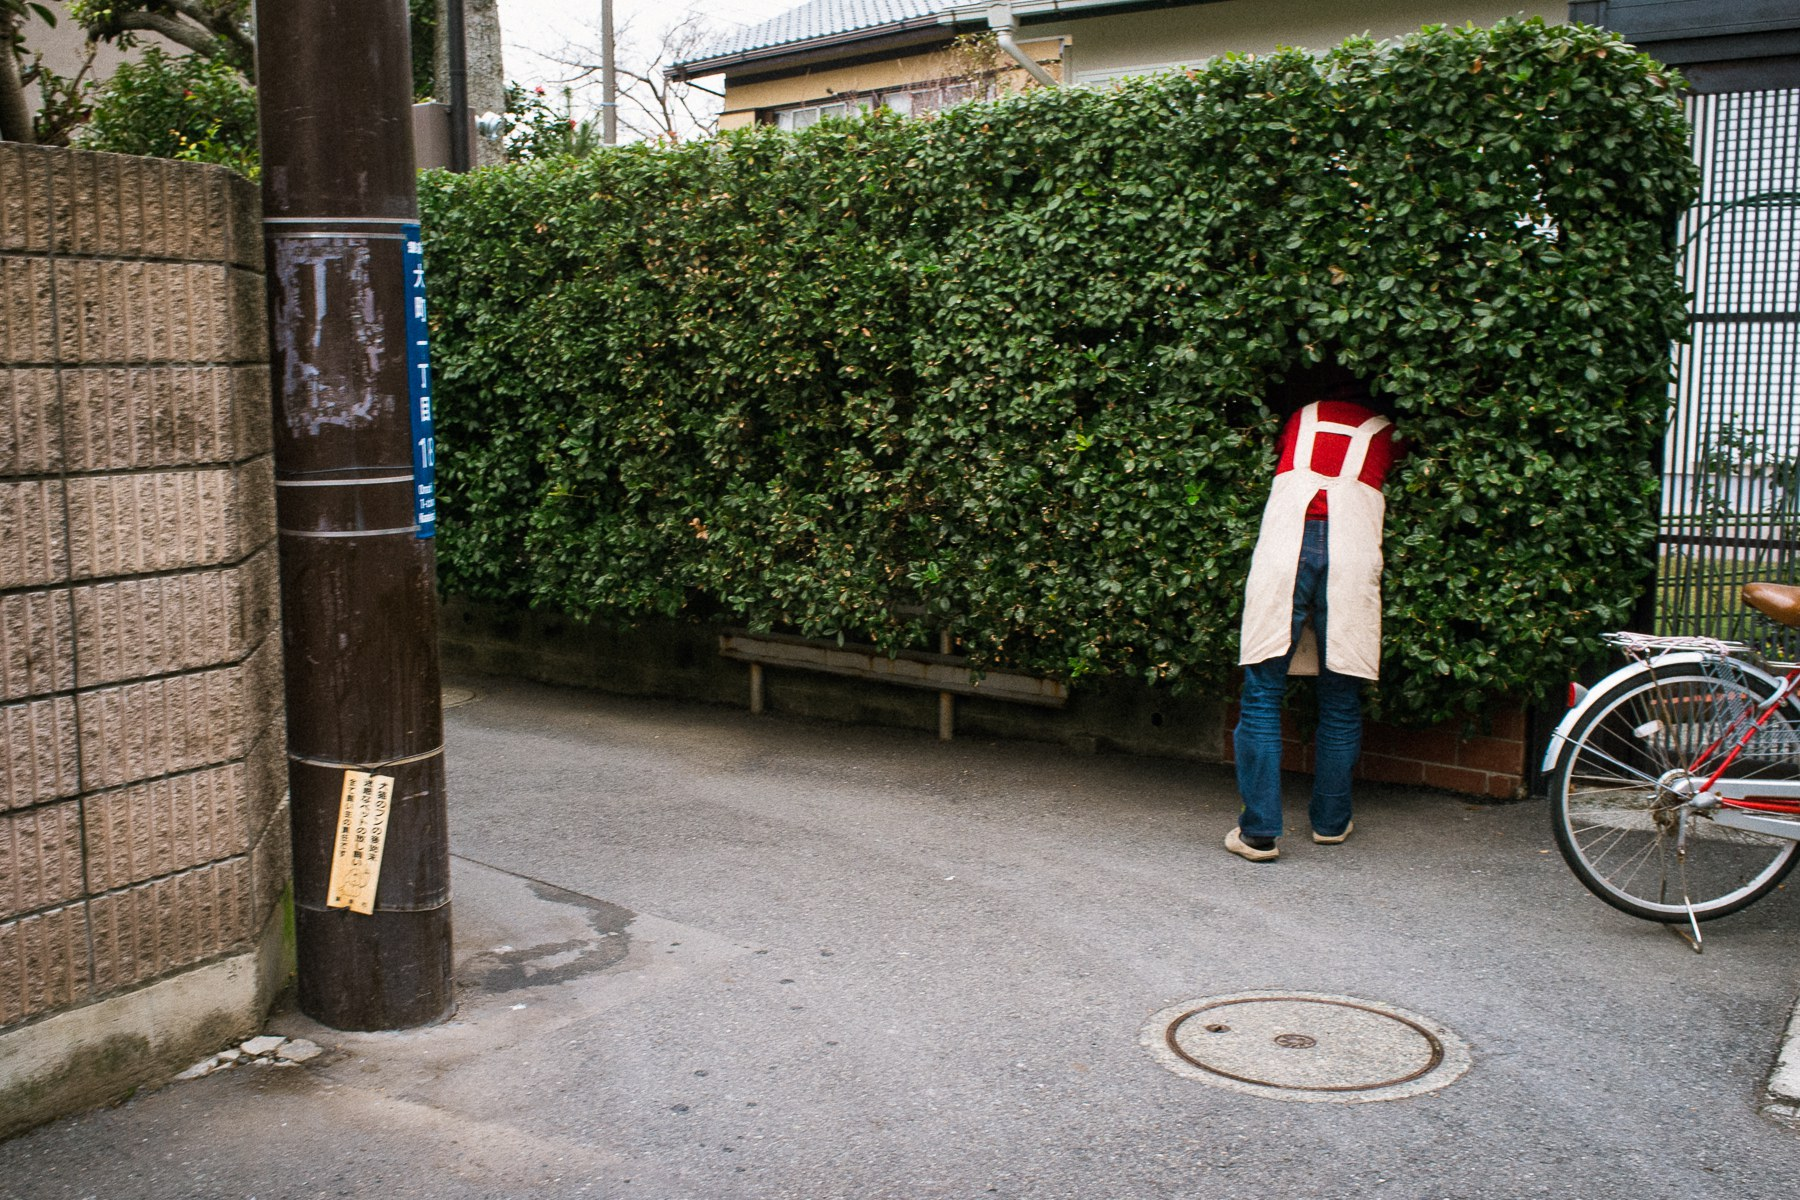 Quirky Juxtapositions Capture Imperfect Human Moments in Photographs by Shin Noguchi | Colossal